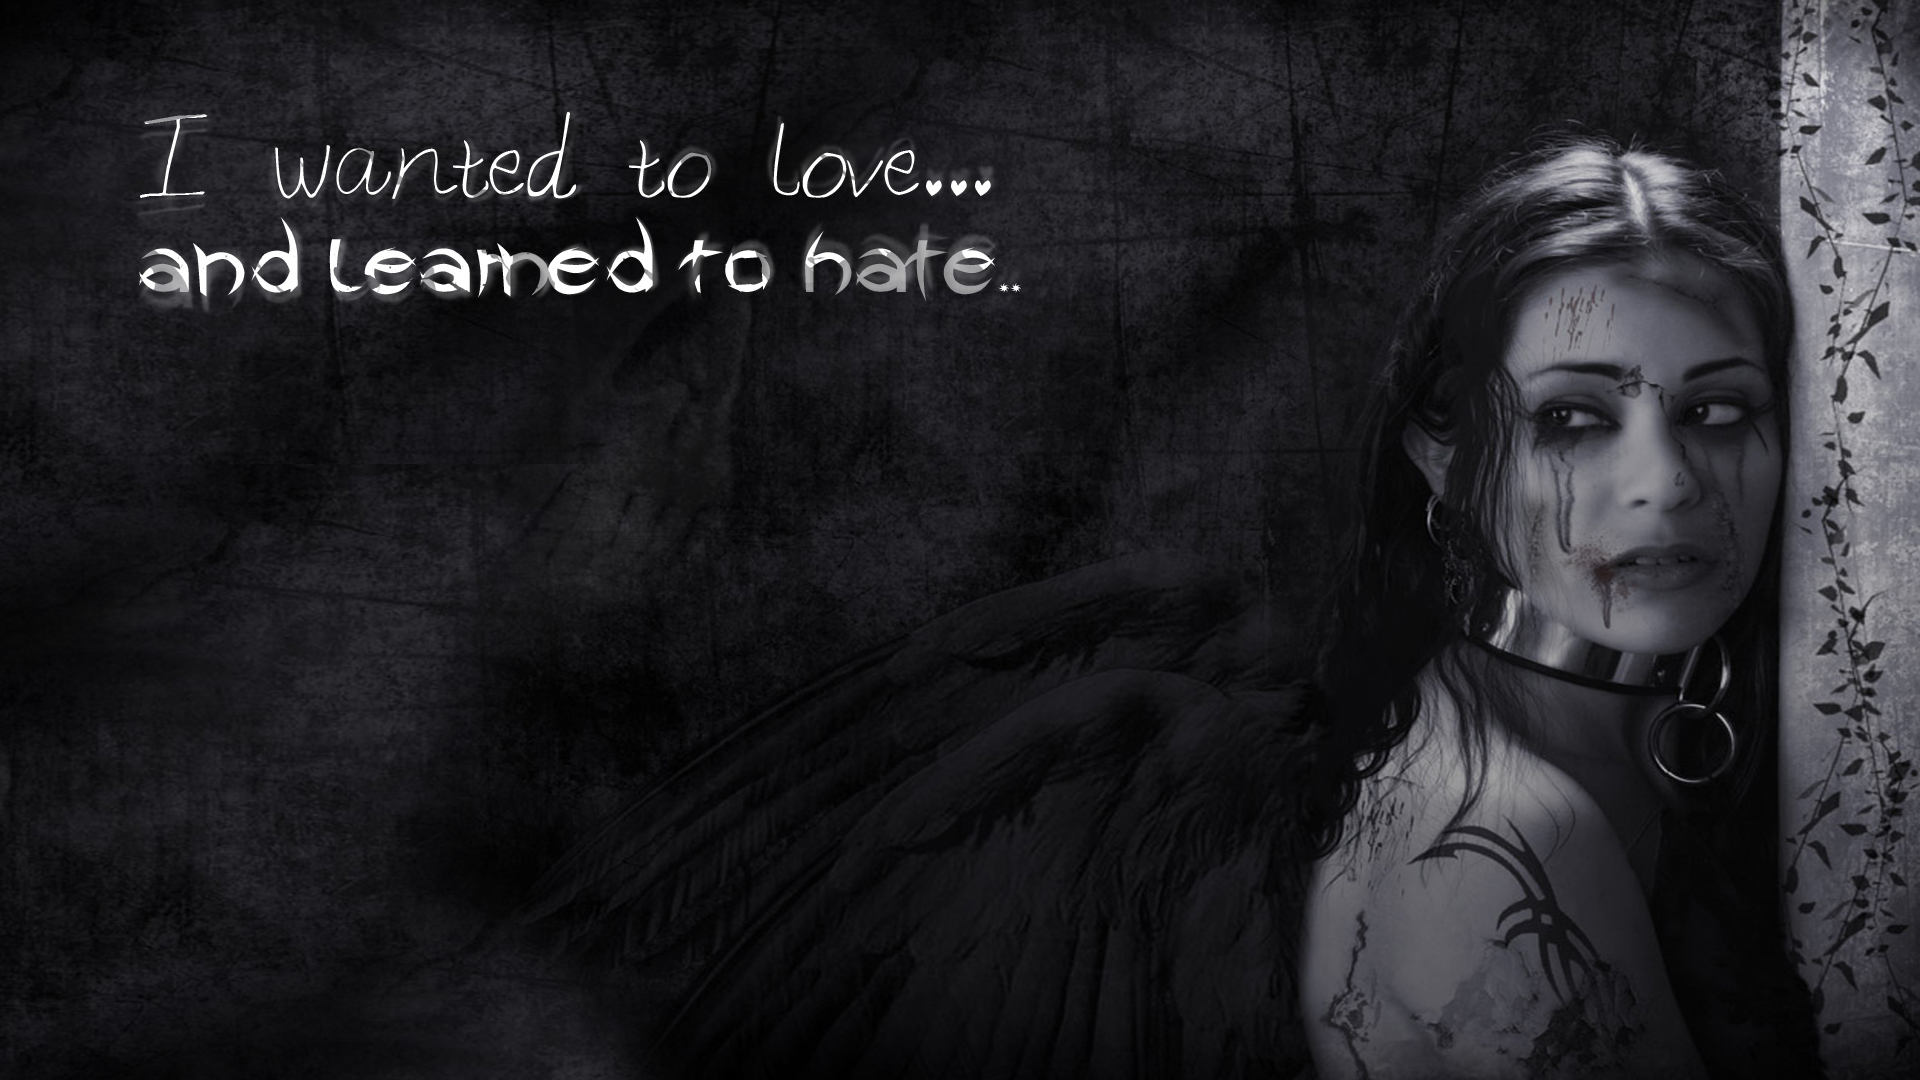 Hatred Wallpapers 4USkYcom 1920x1080